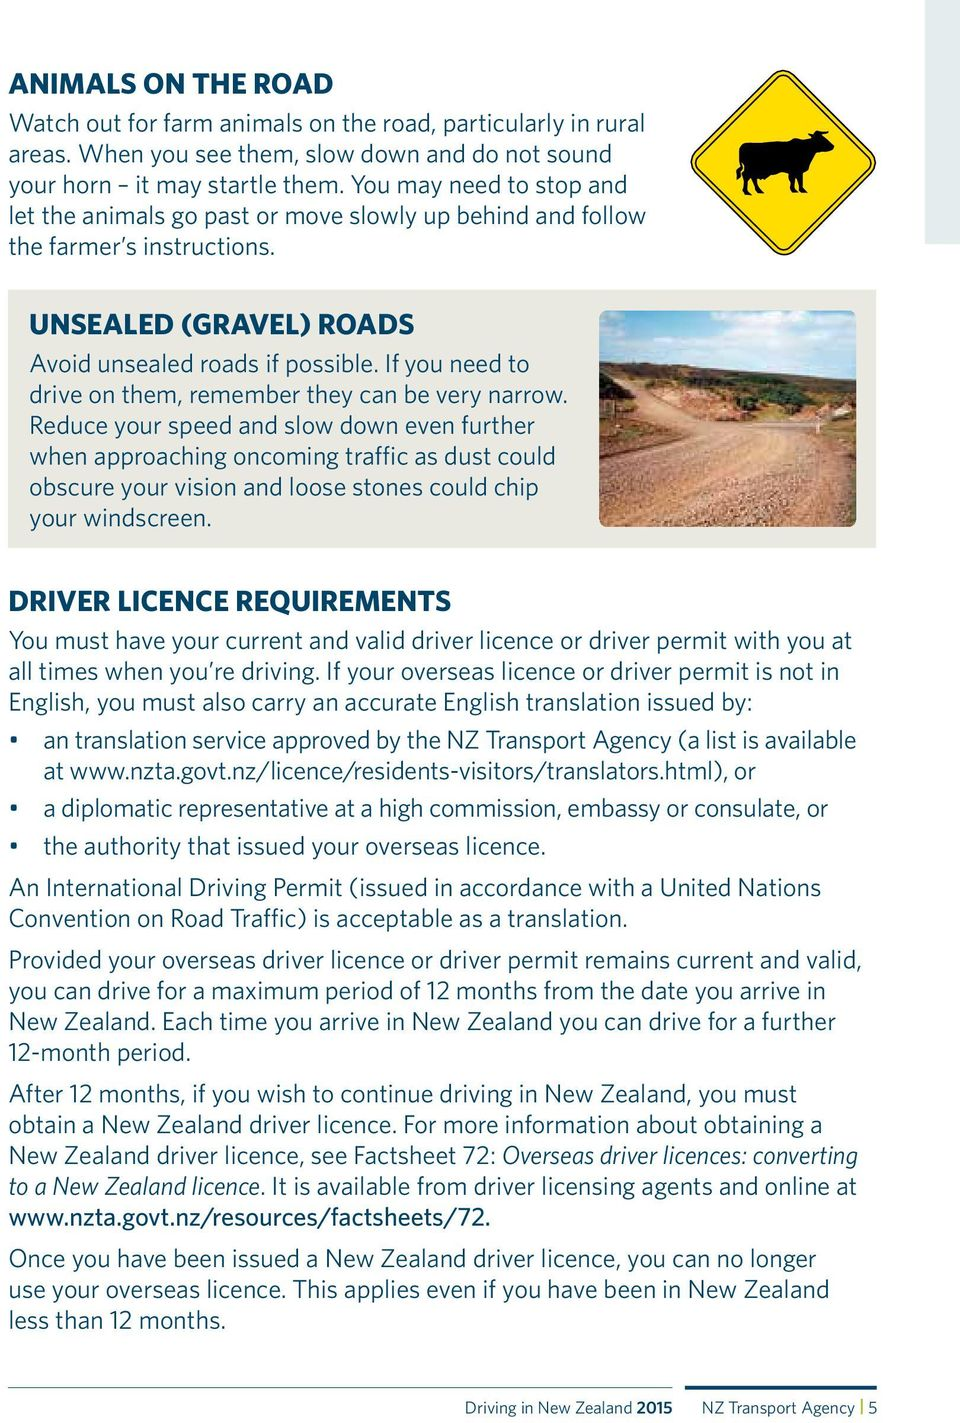 DRIVING IN NEW ZEALAND - PDF